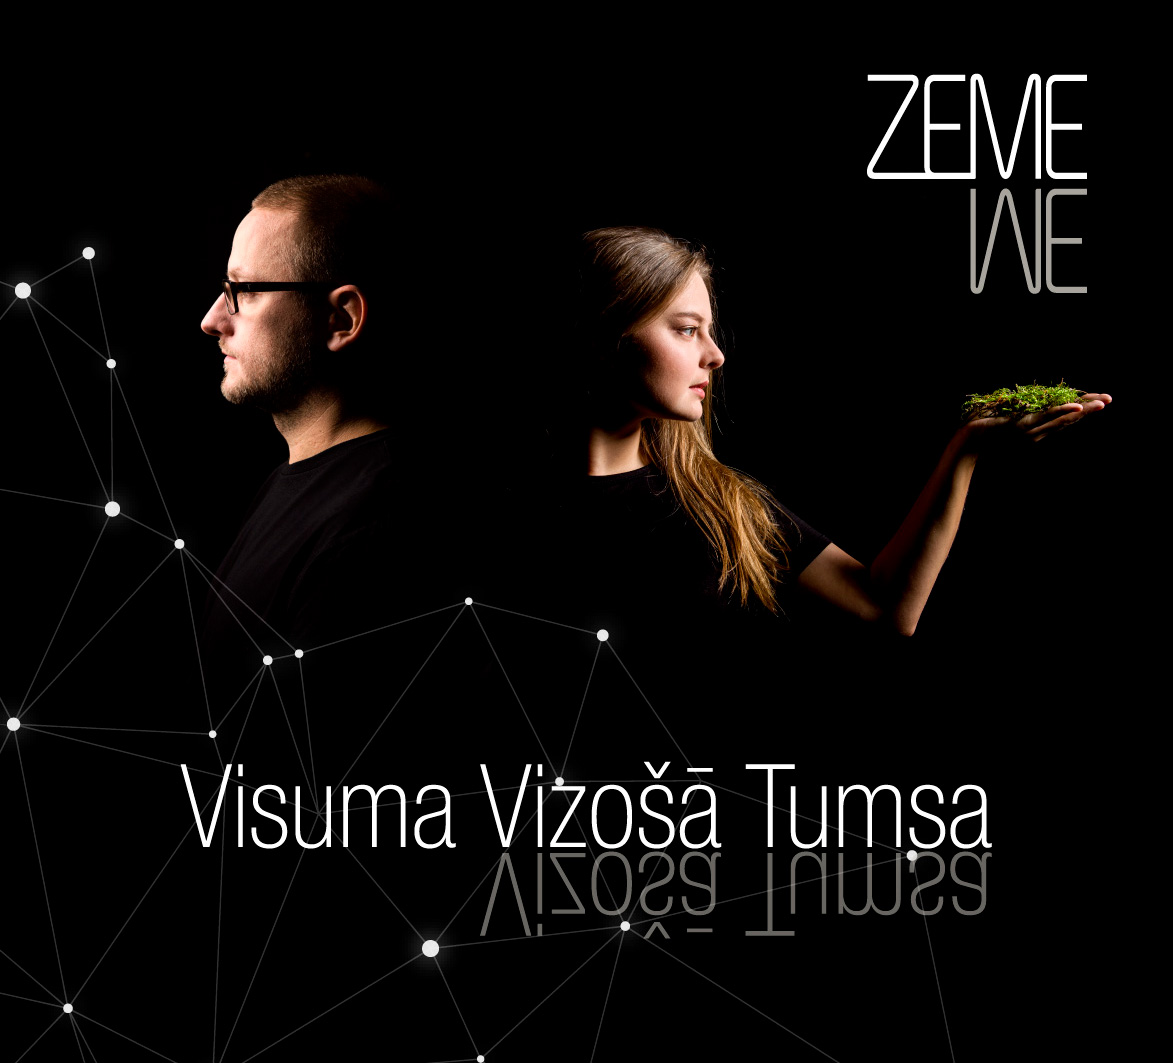 ZeMe prepares for its first special concert @ Concerthall Daile in Riga on 20th September